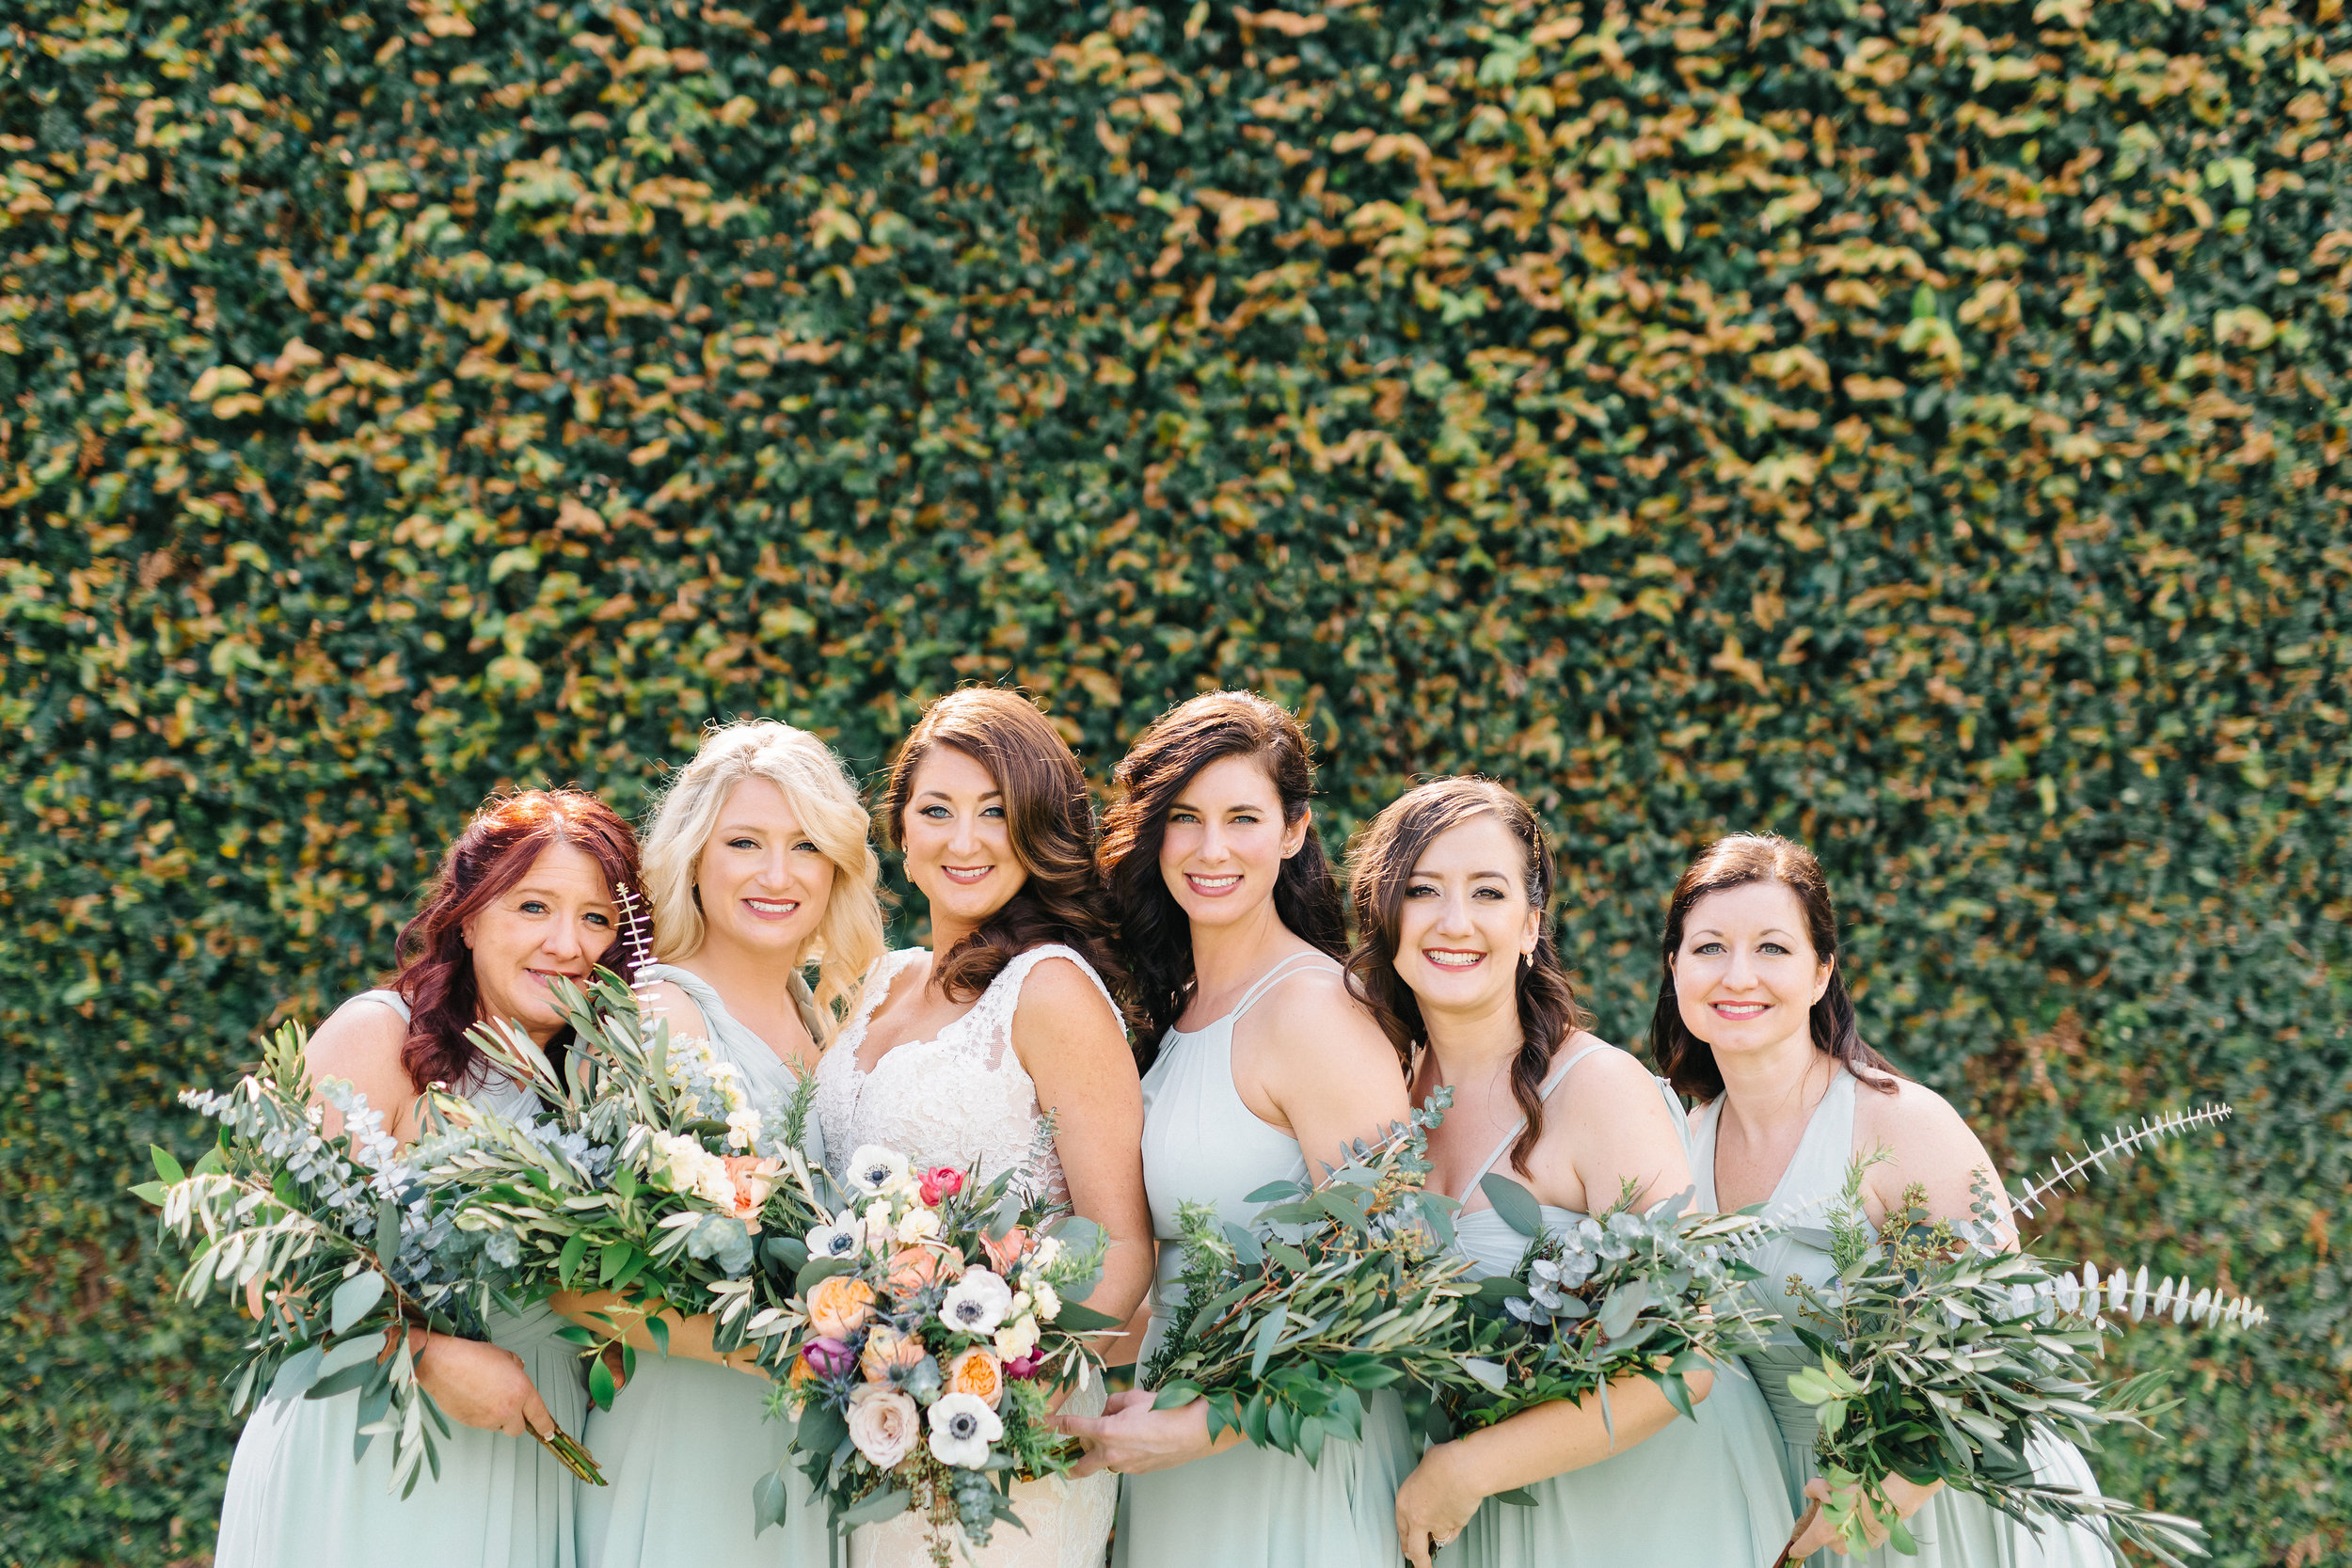 Bridal bouquet with anemones, garden roses, eucalyptus and olive leaf  Bridesmaids in dusty green with eucalyptus and olive leaf bouquets  Orlando Wedding Planner Blue Ribbon Weddings  Orlando Wedding Photographer Emma Shourds Photography  Wedding Ceremony at Bell Tower at Bella Collina  Wedding Reception in Atrium at Bella Collina